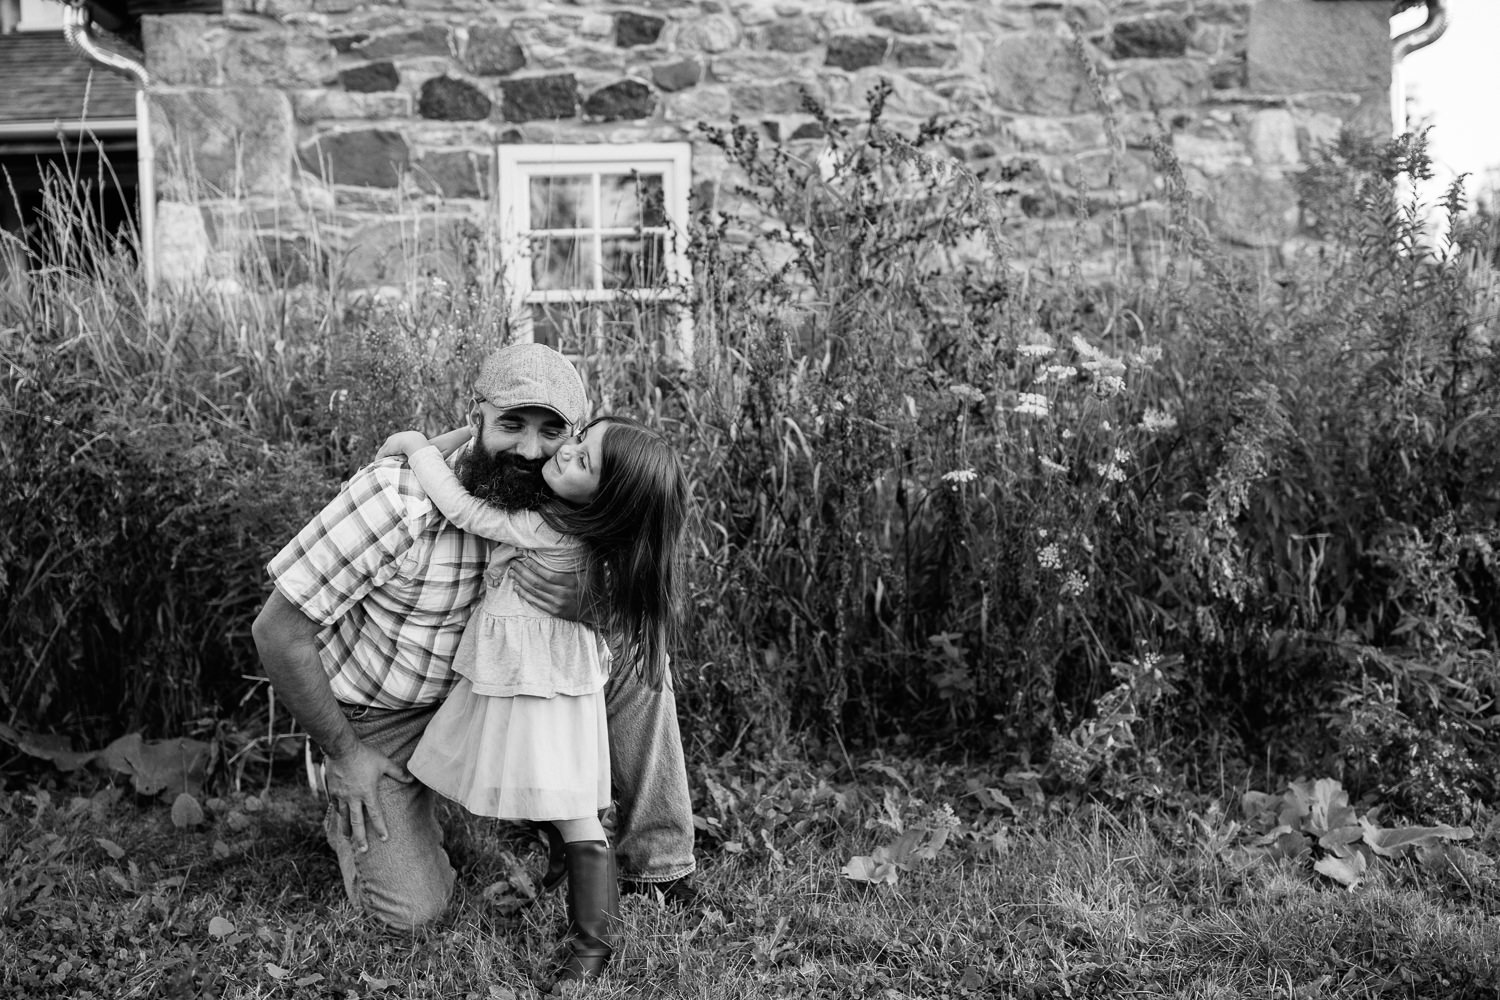 father bending down on one knee in front of old stone house as 5 year old girl hugs him around the neck, dad's arm around daughter - Stouffville Lifestyle Photos